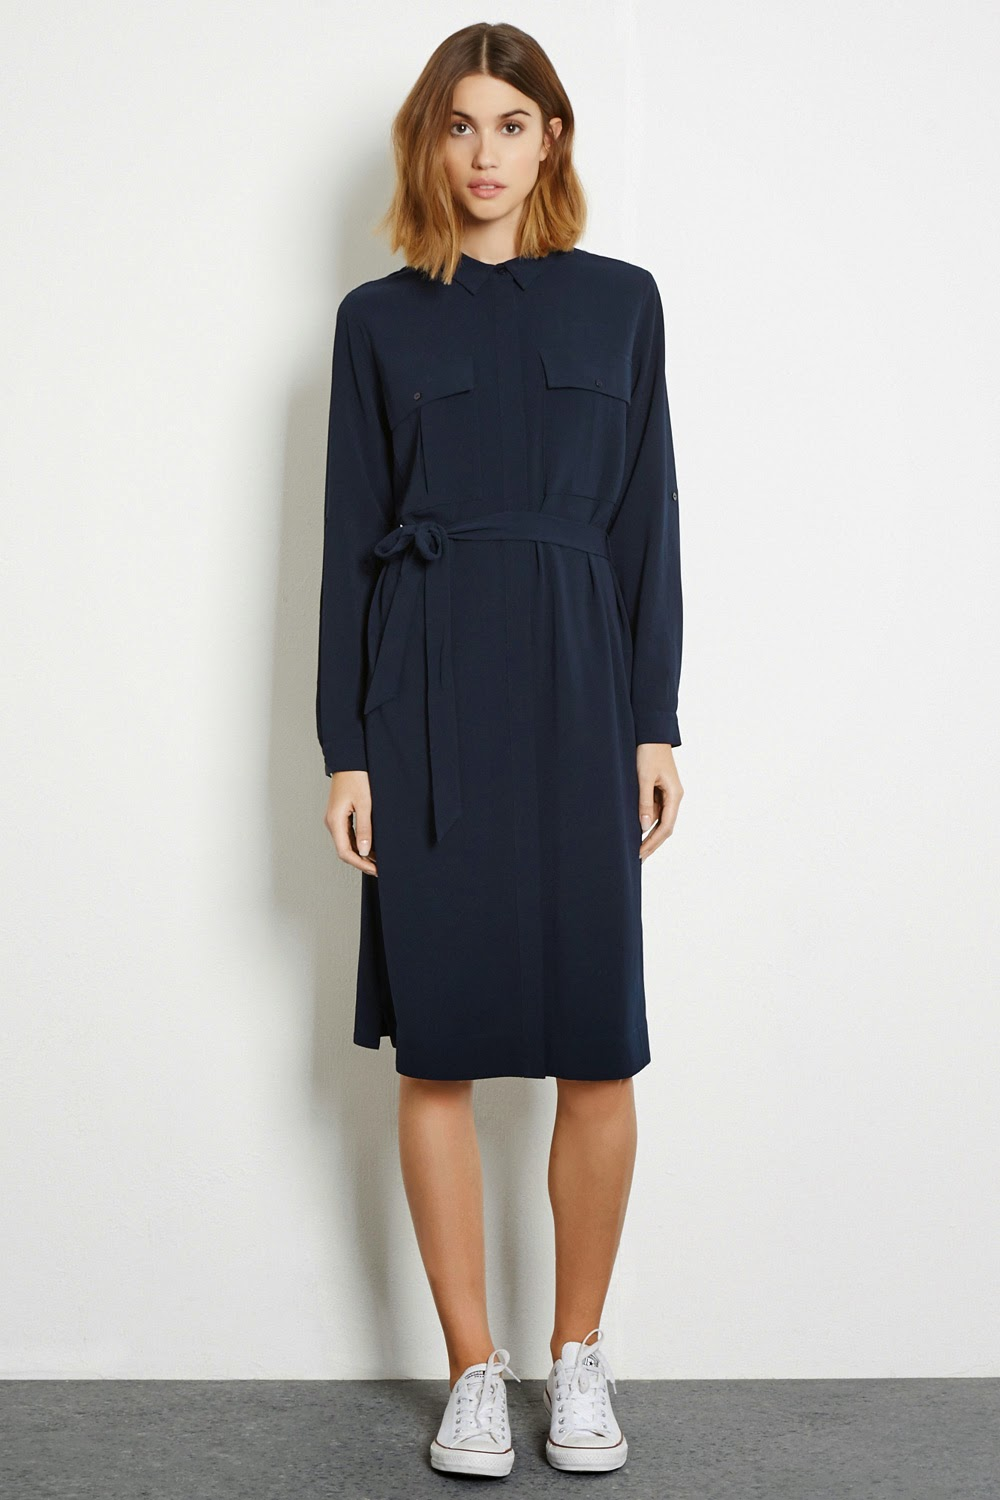 warehouse navy dress, navy shirt dress,